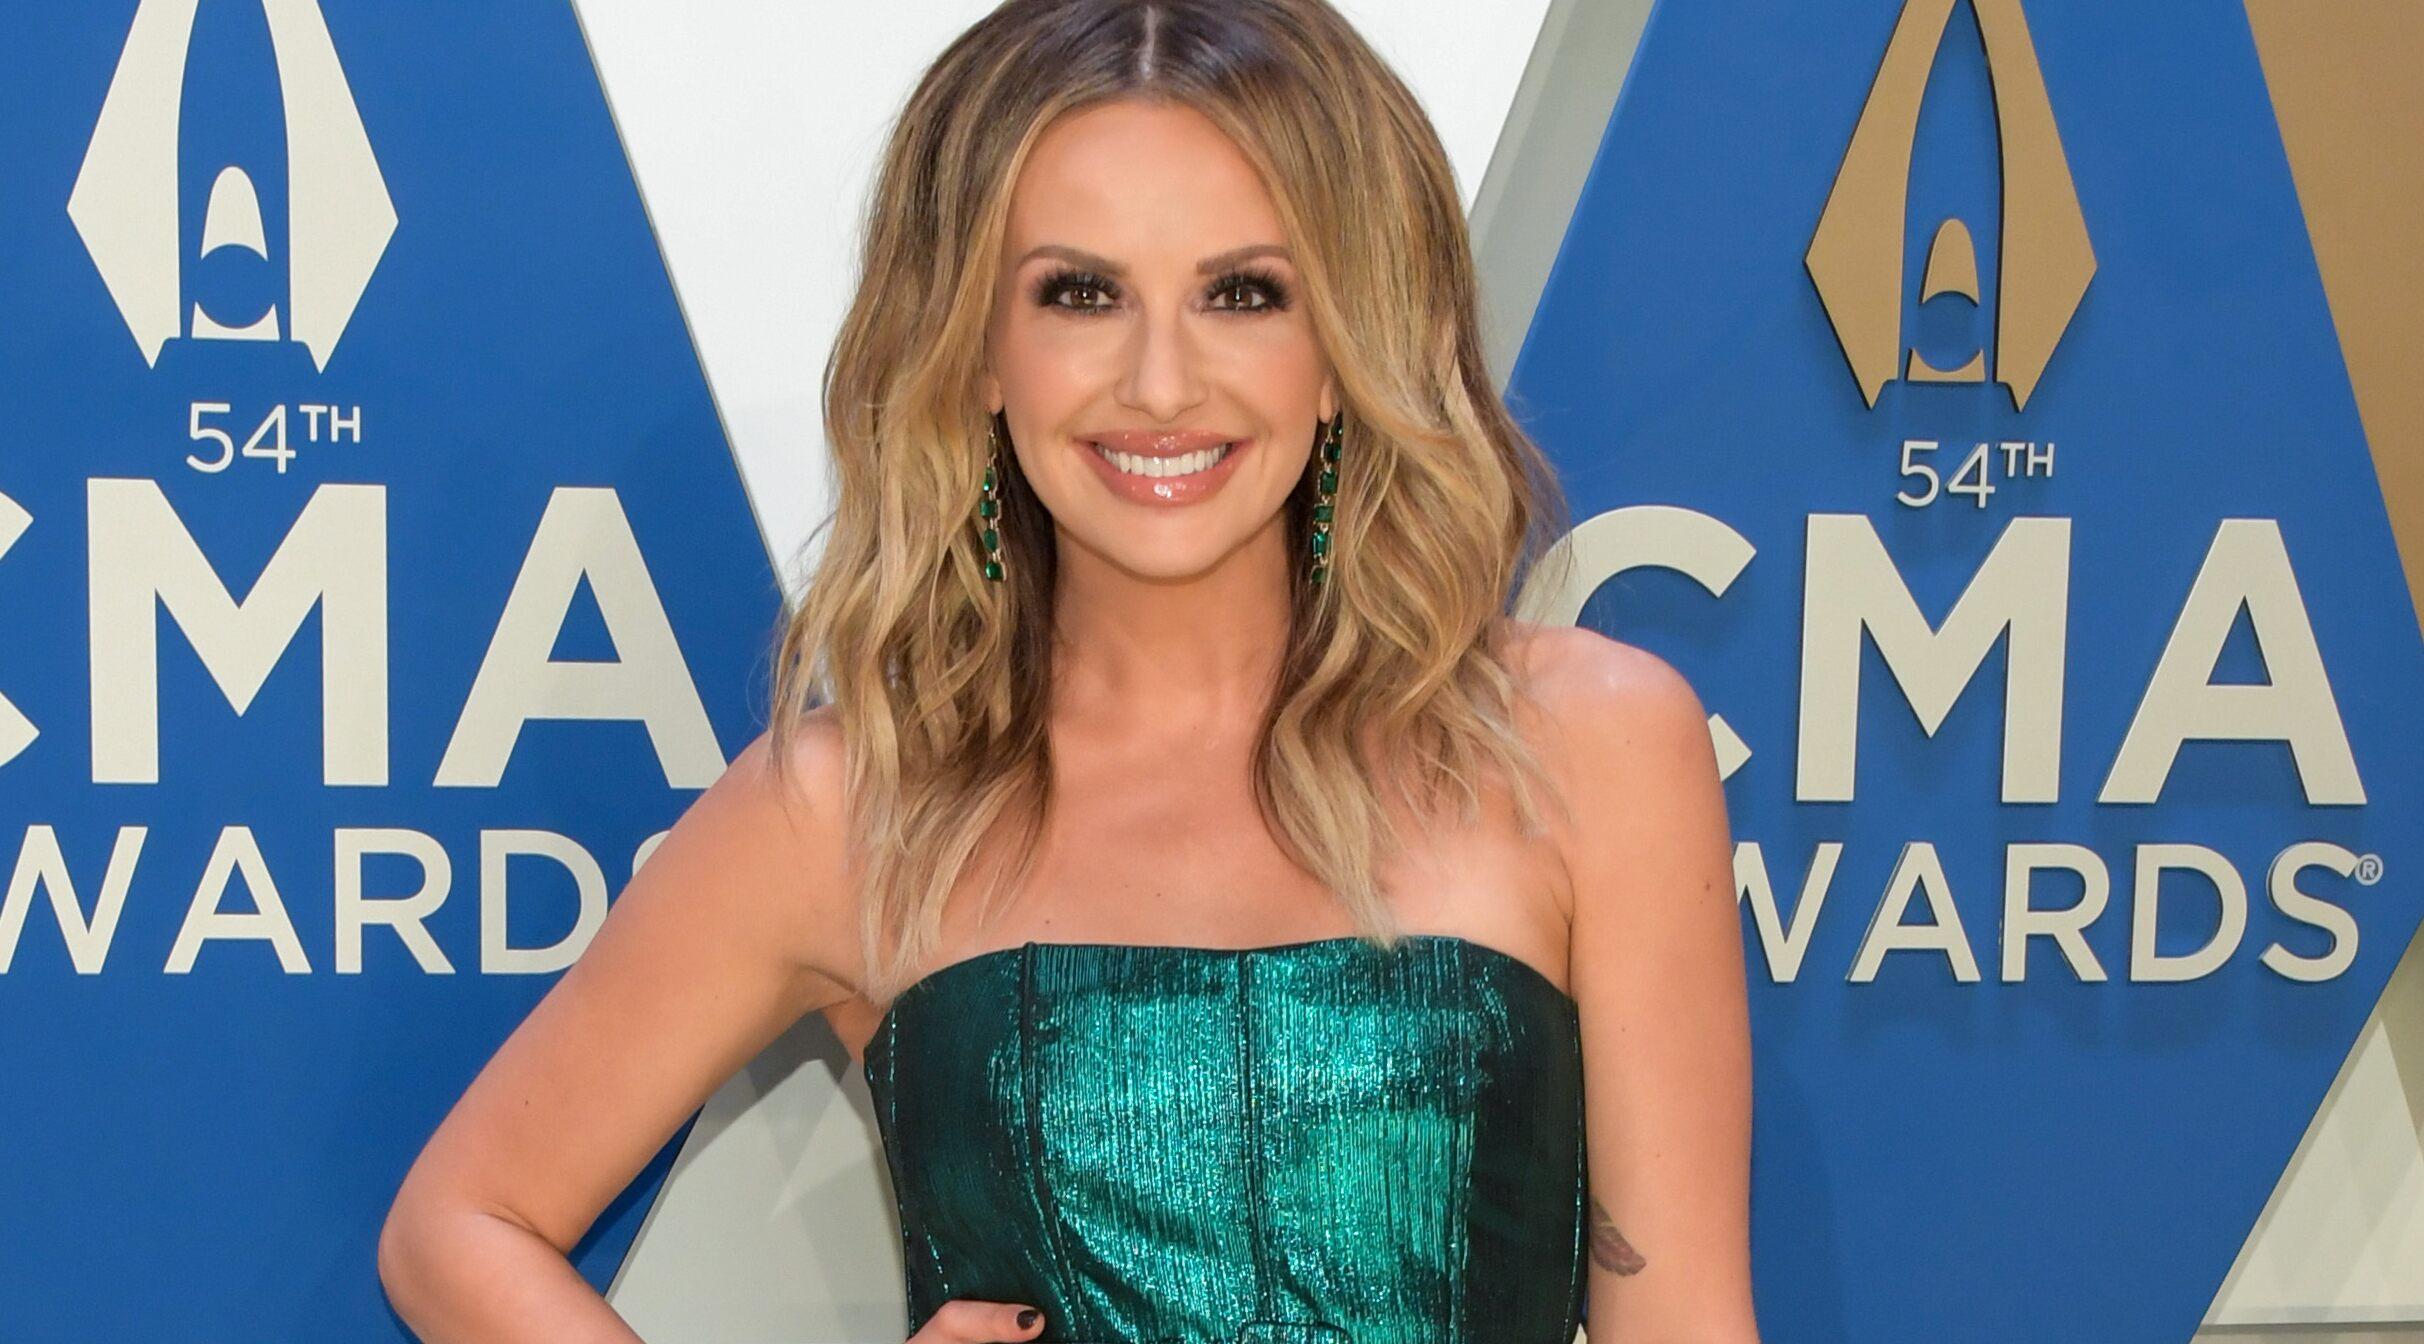 Carly Pearce stuns in green strapless dress on 2020 CMA Awards red carpet